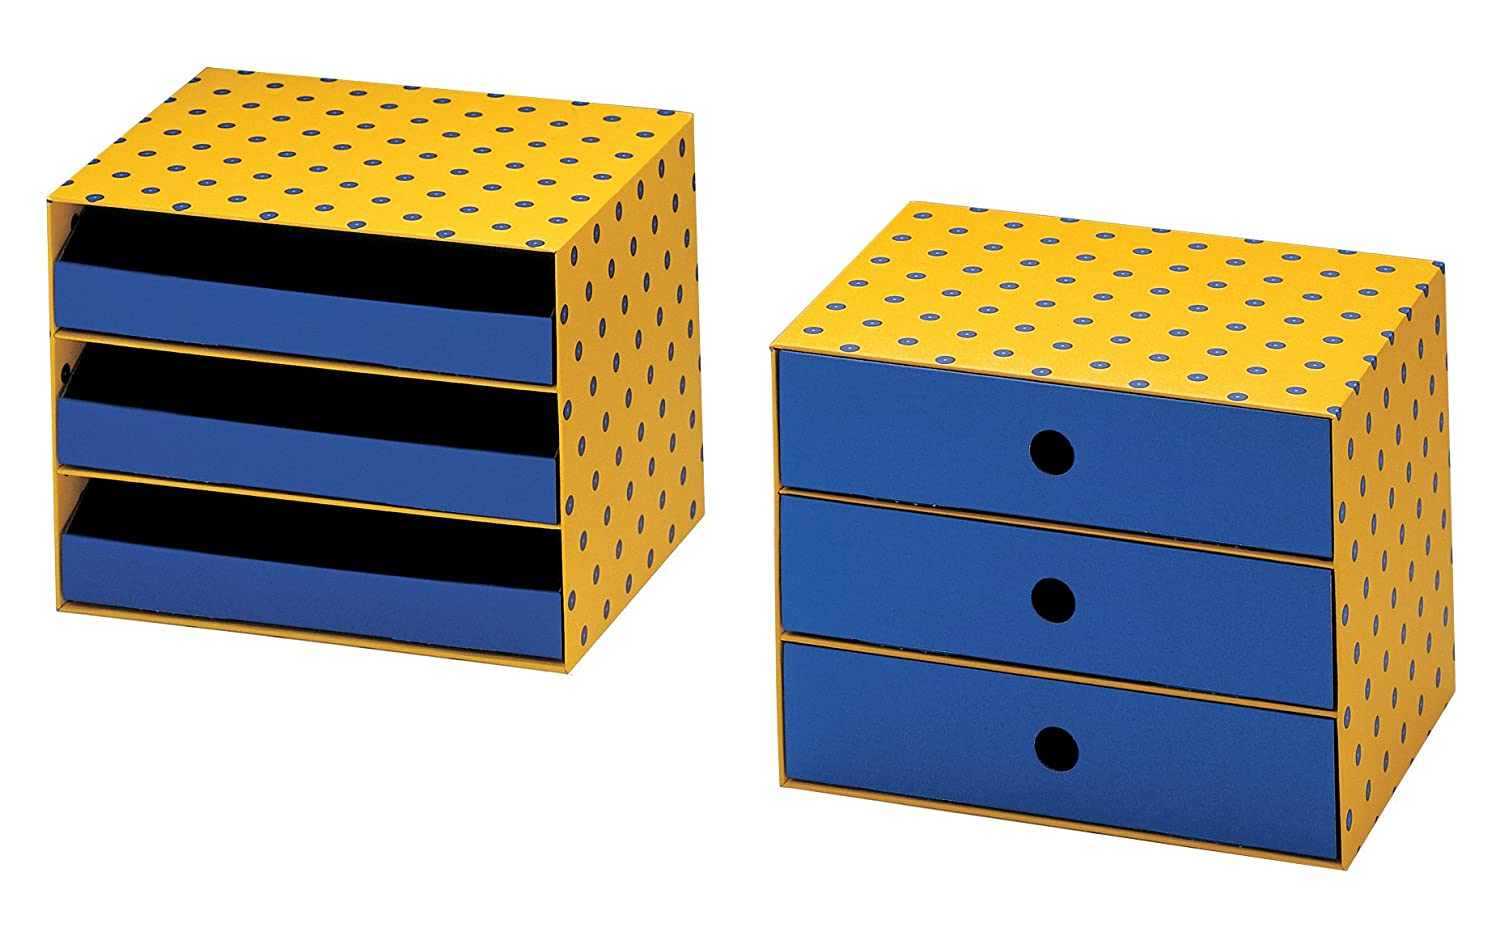 Amazon.com: Nips A4 32 x 24.5 x 24.5cm Spot Drawer Box ...